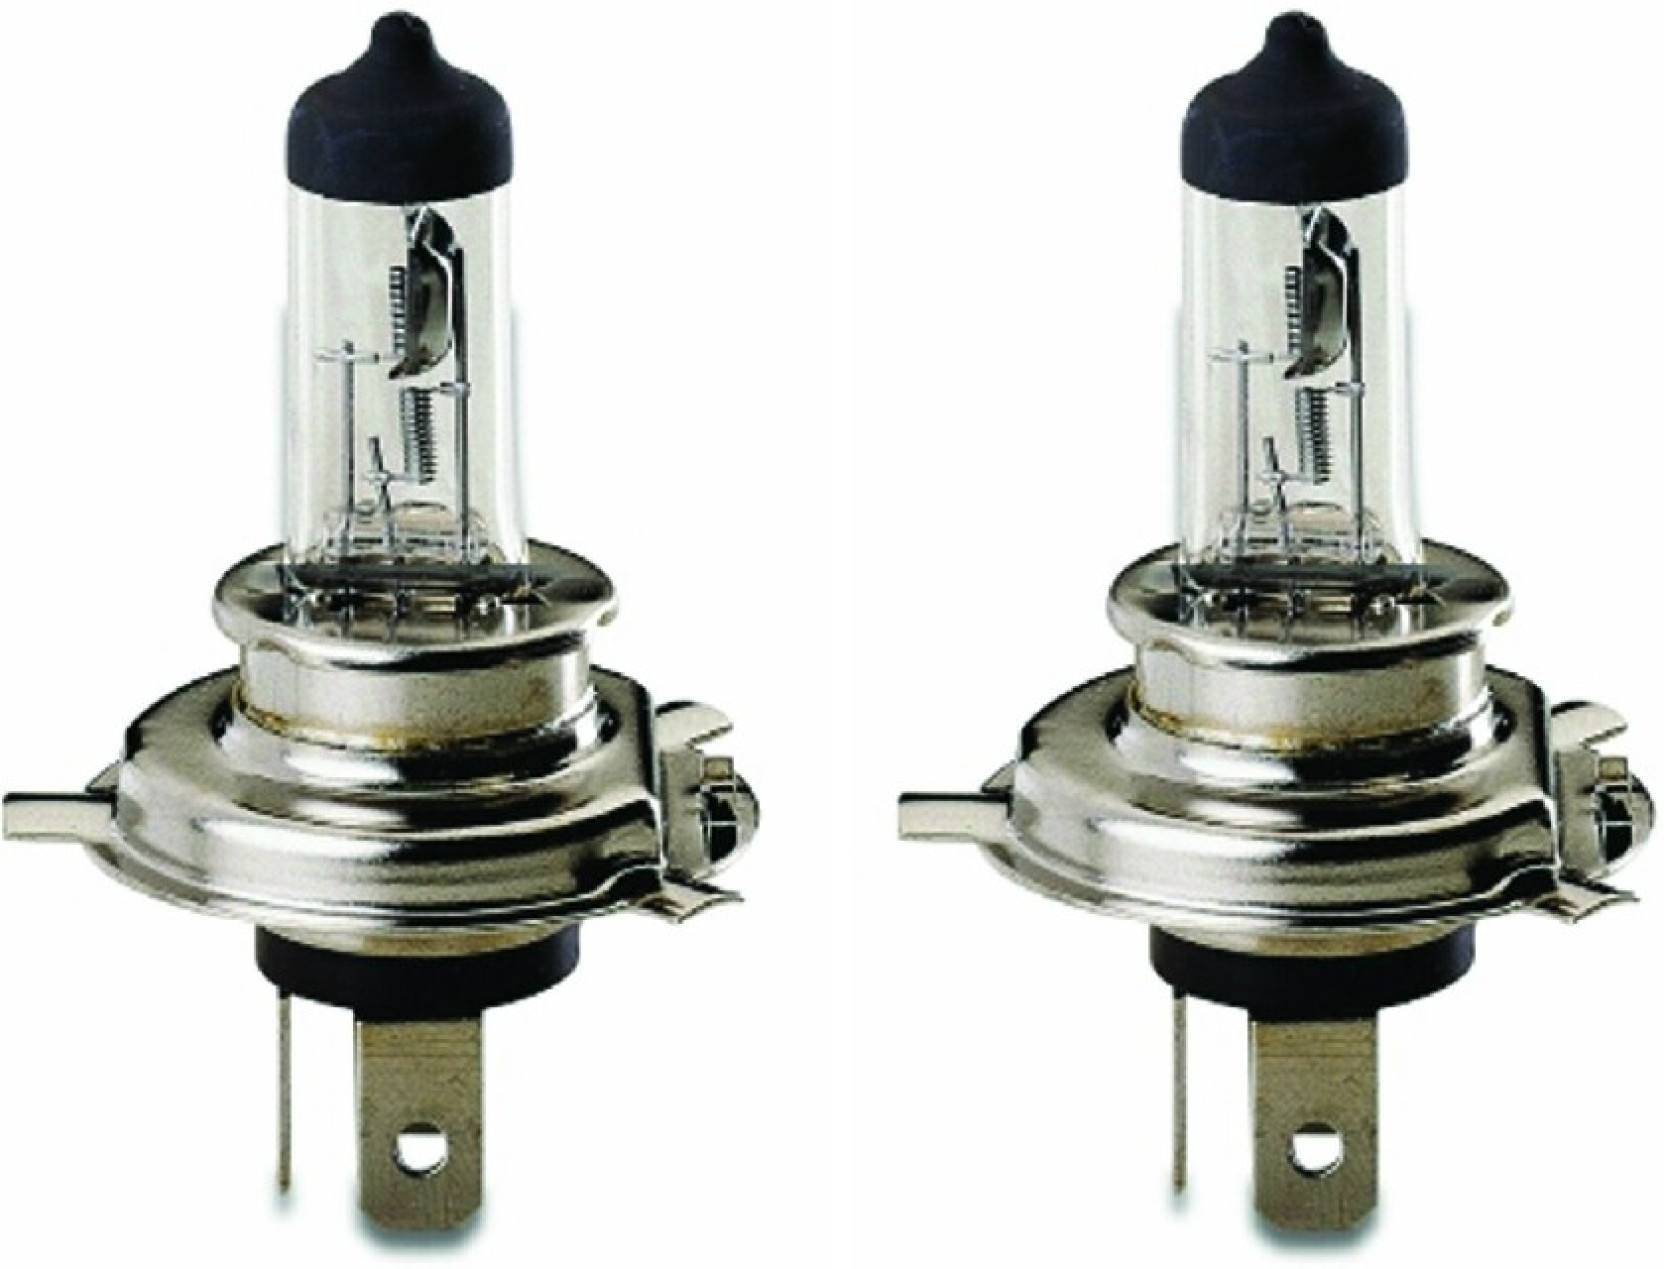 Hella Halogen Headlight Universal For Car Price In India Buy Positive Terminal Rewiring And H4 Setup Home